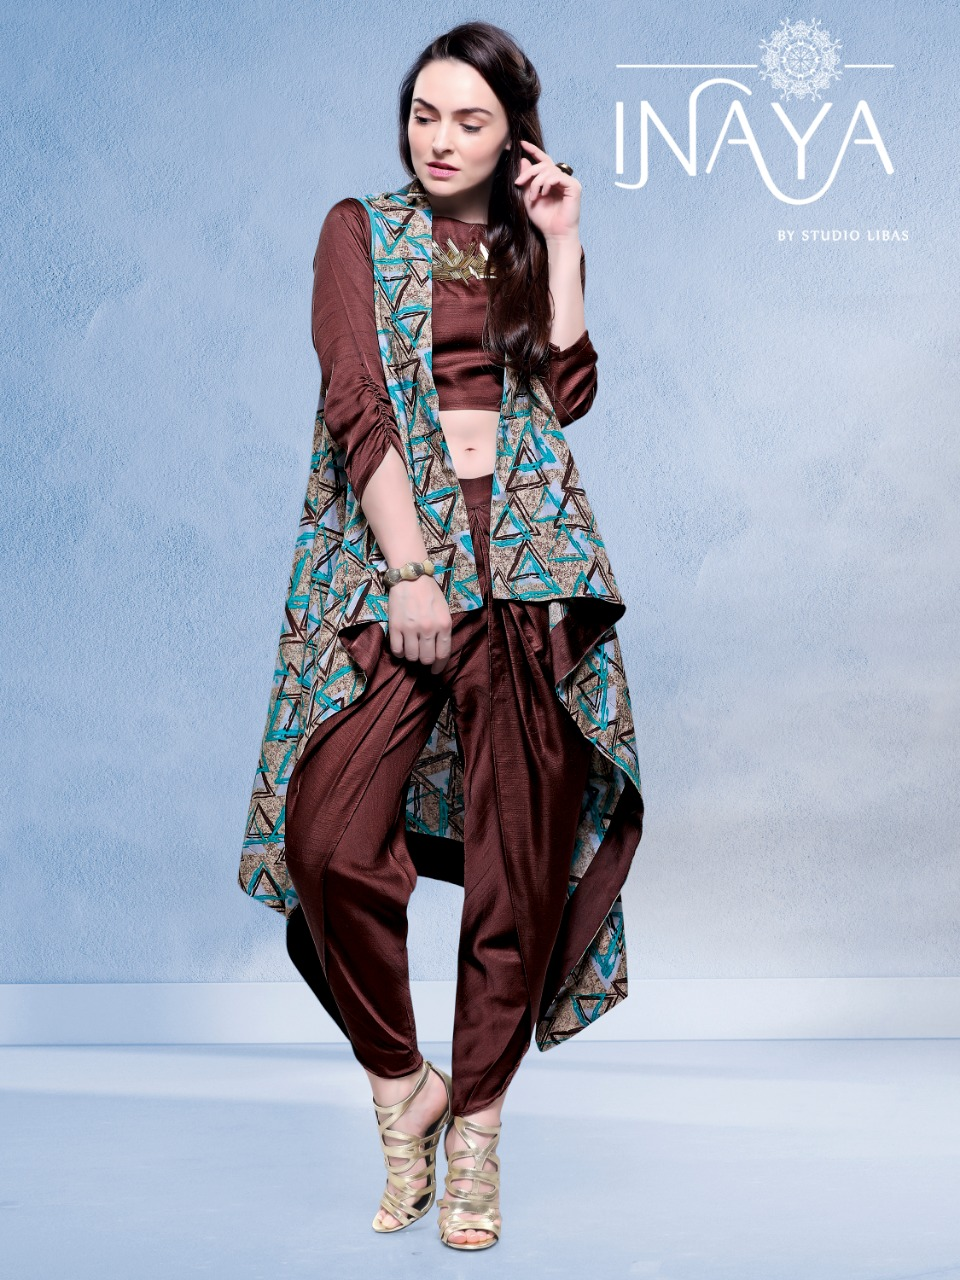 Inaya by studio launch jacket and dhoti designer party wear concept of new style jacket with dhoti